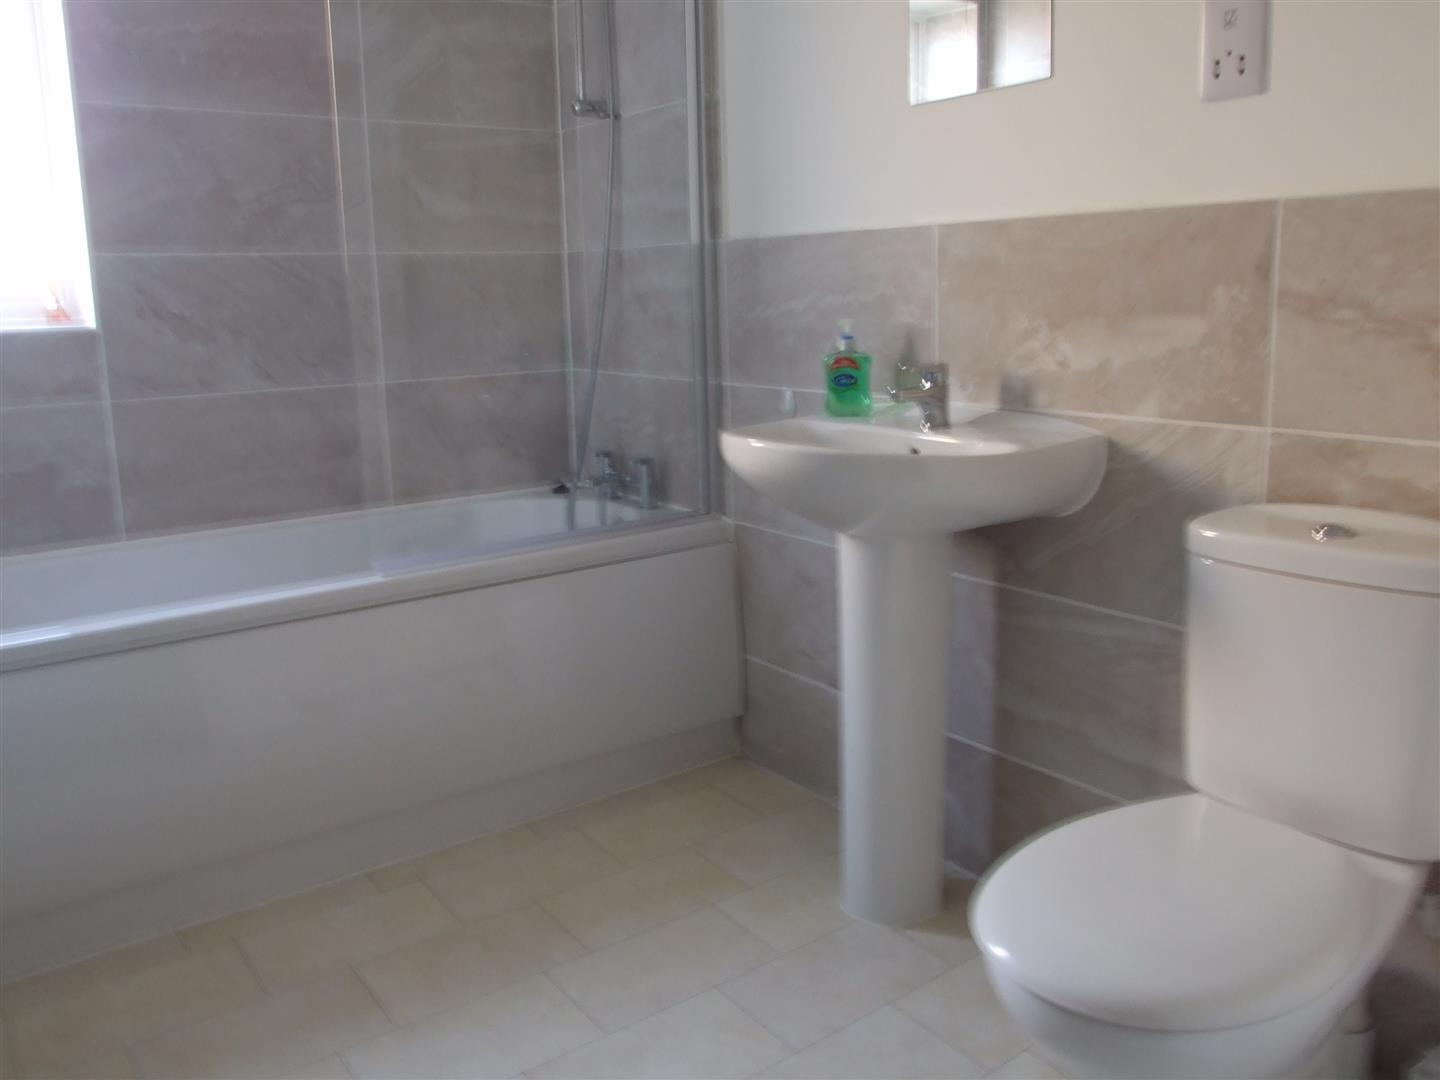 3 bed house to rent in Long Sutton, PE12 9GZ 3